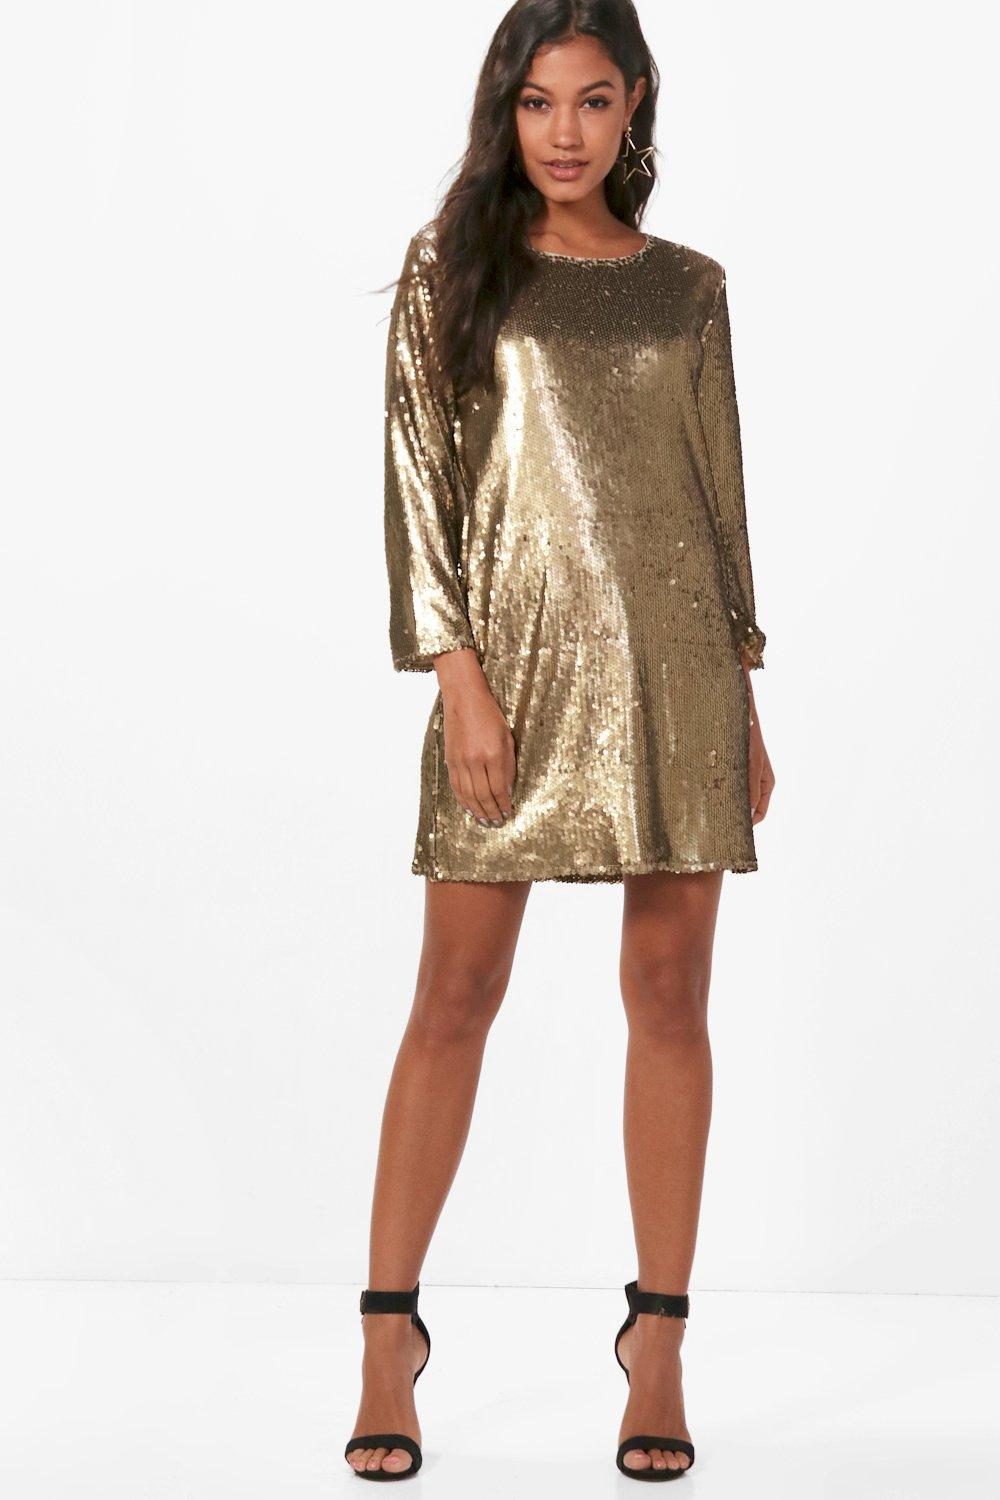 20 New Years Eve Sequin Dresses Under $50 - Society19